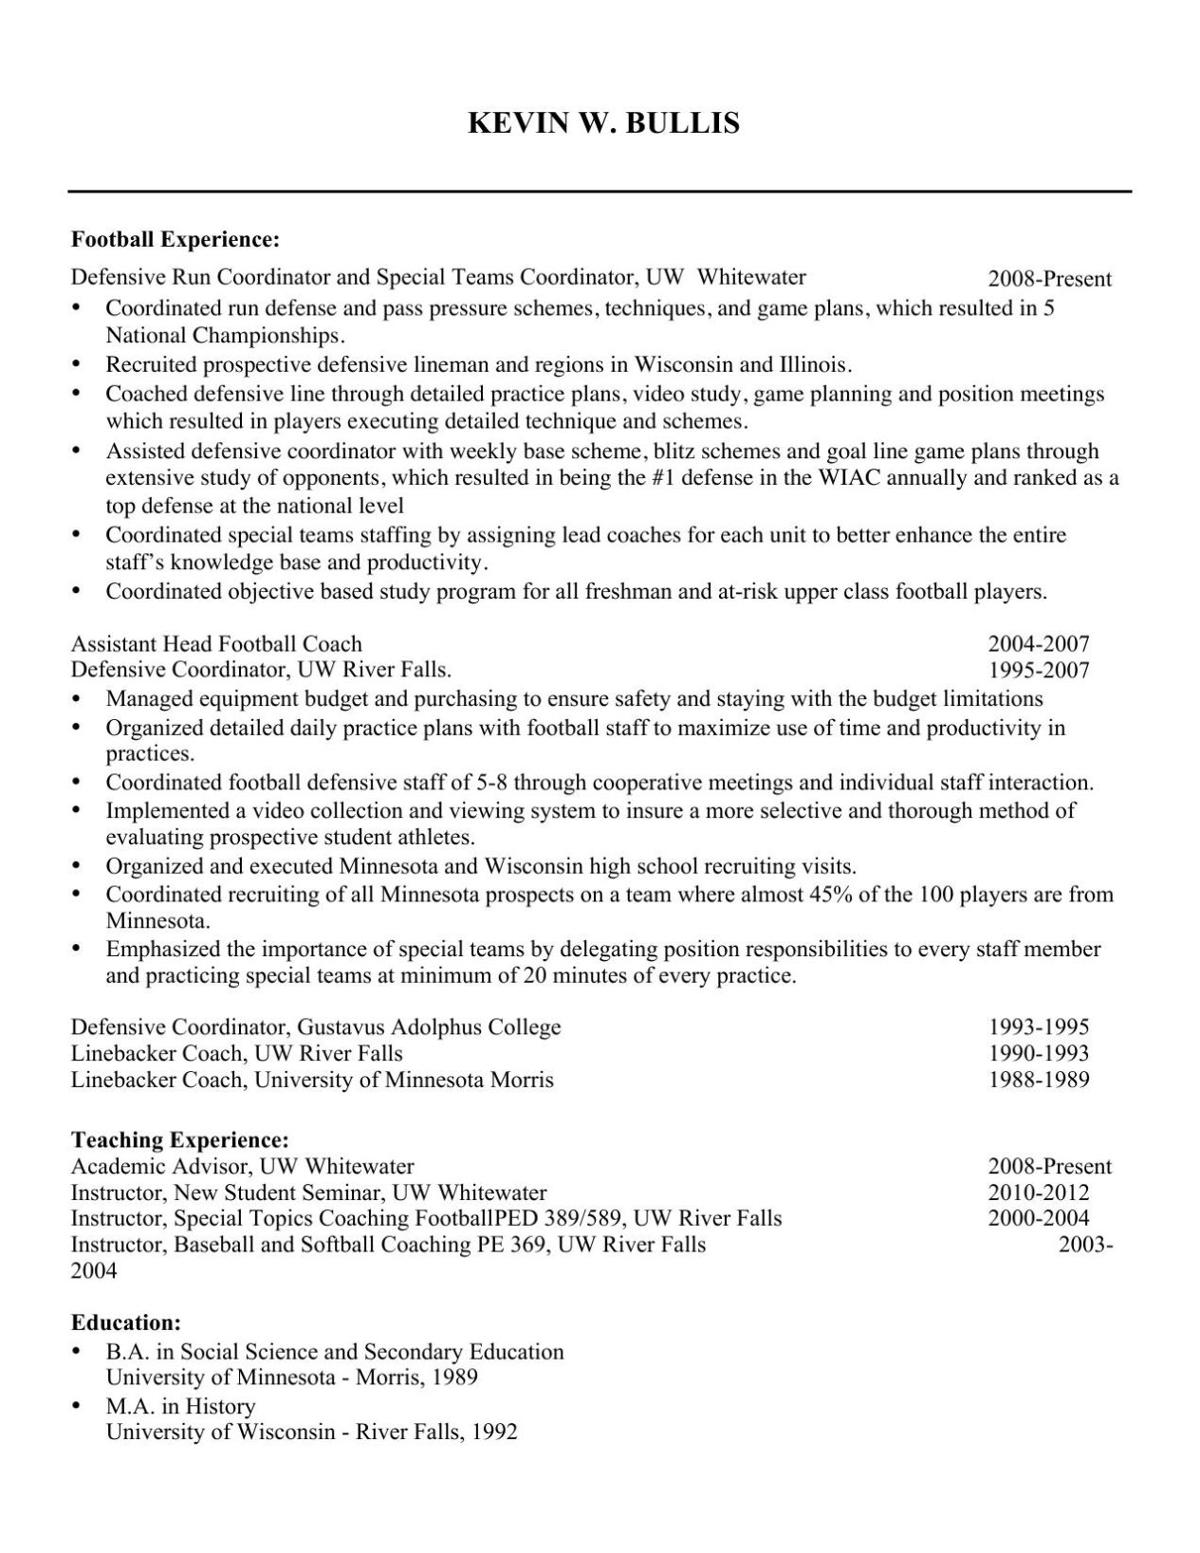 kevin bullis  resume for uw